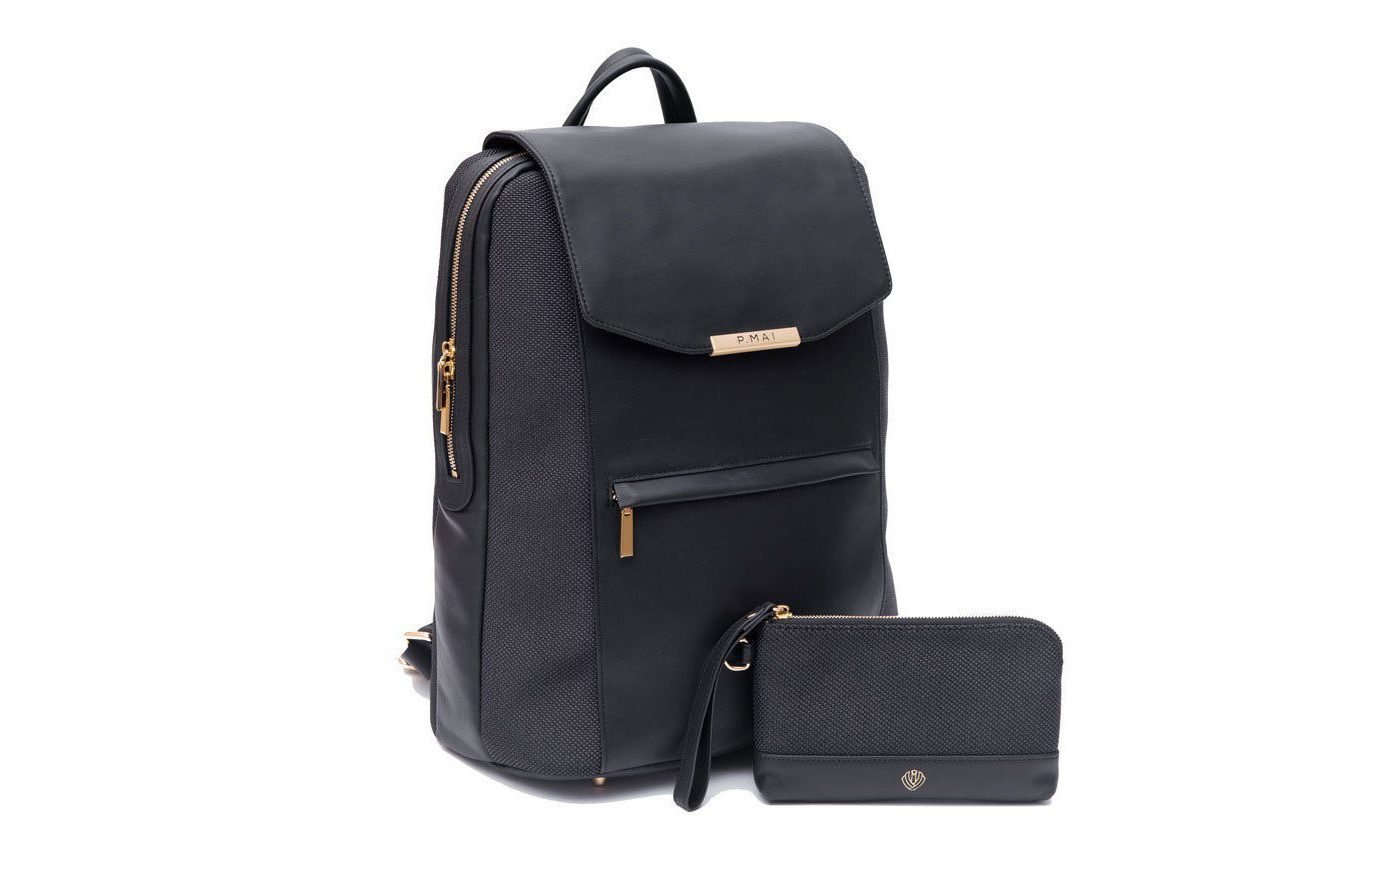 Style + Design luggage suitcase bag piece suit sitting accessory case black product product design baggage luggage & bags hand luggage backpack leather